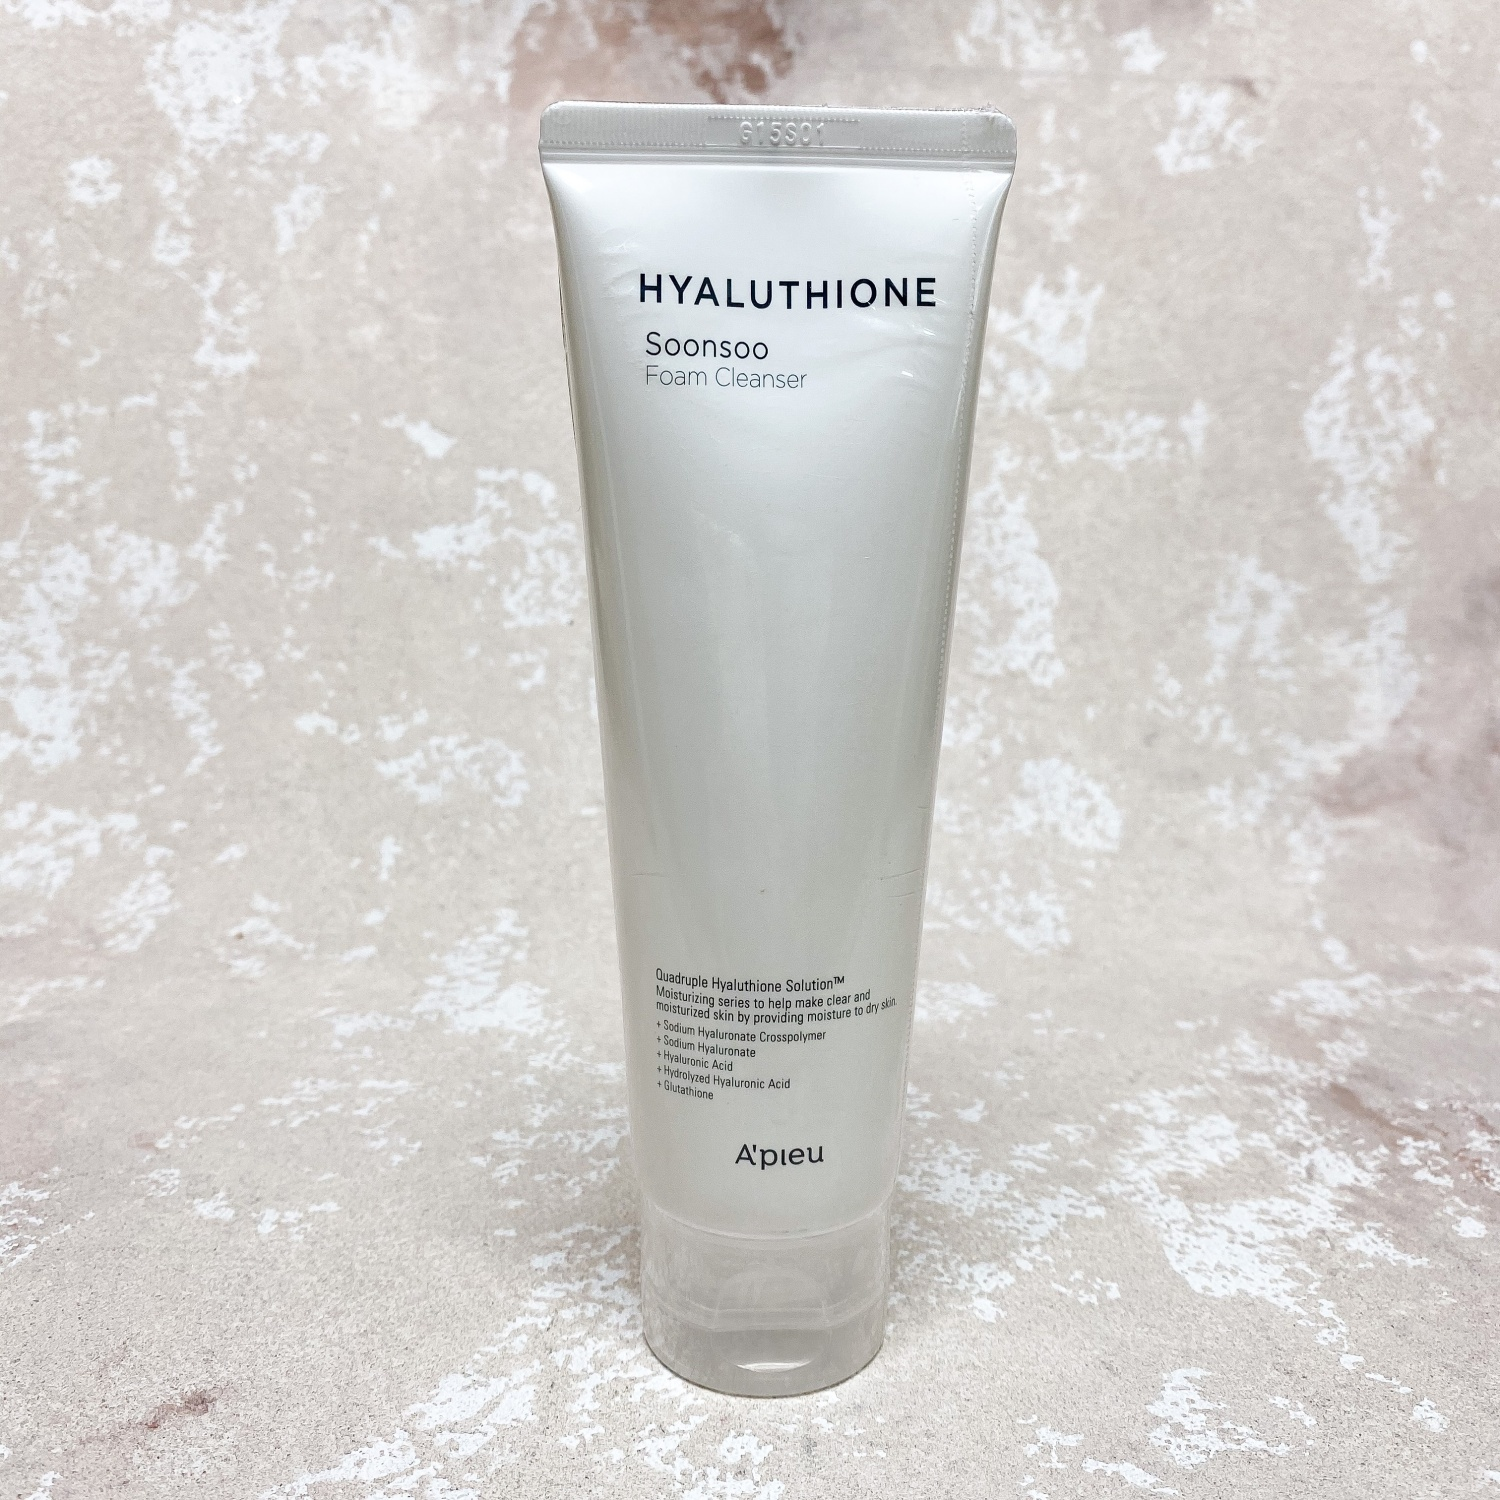 A'Pieu Hyaluthione Soonsoo Foam Cleanser